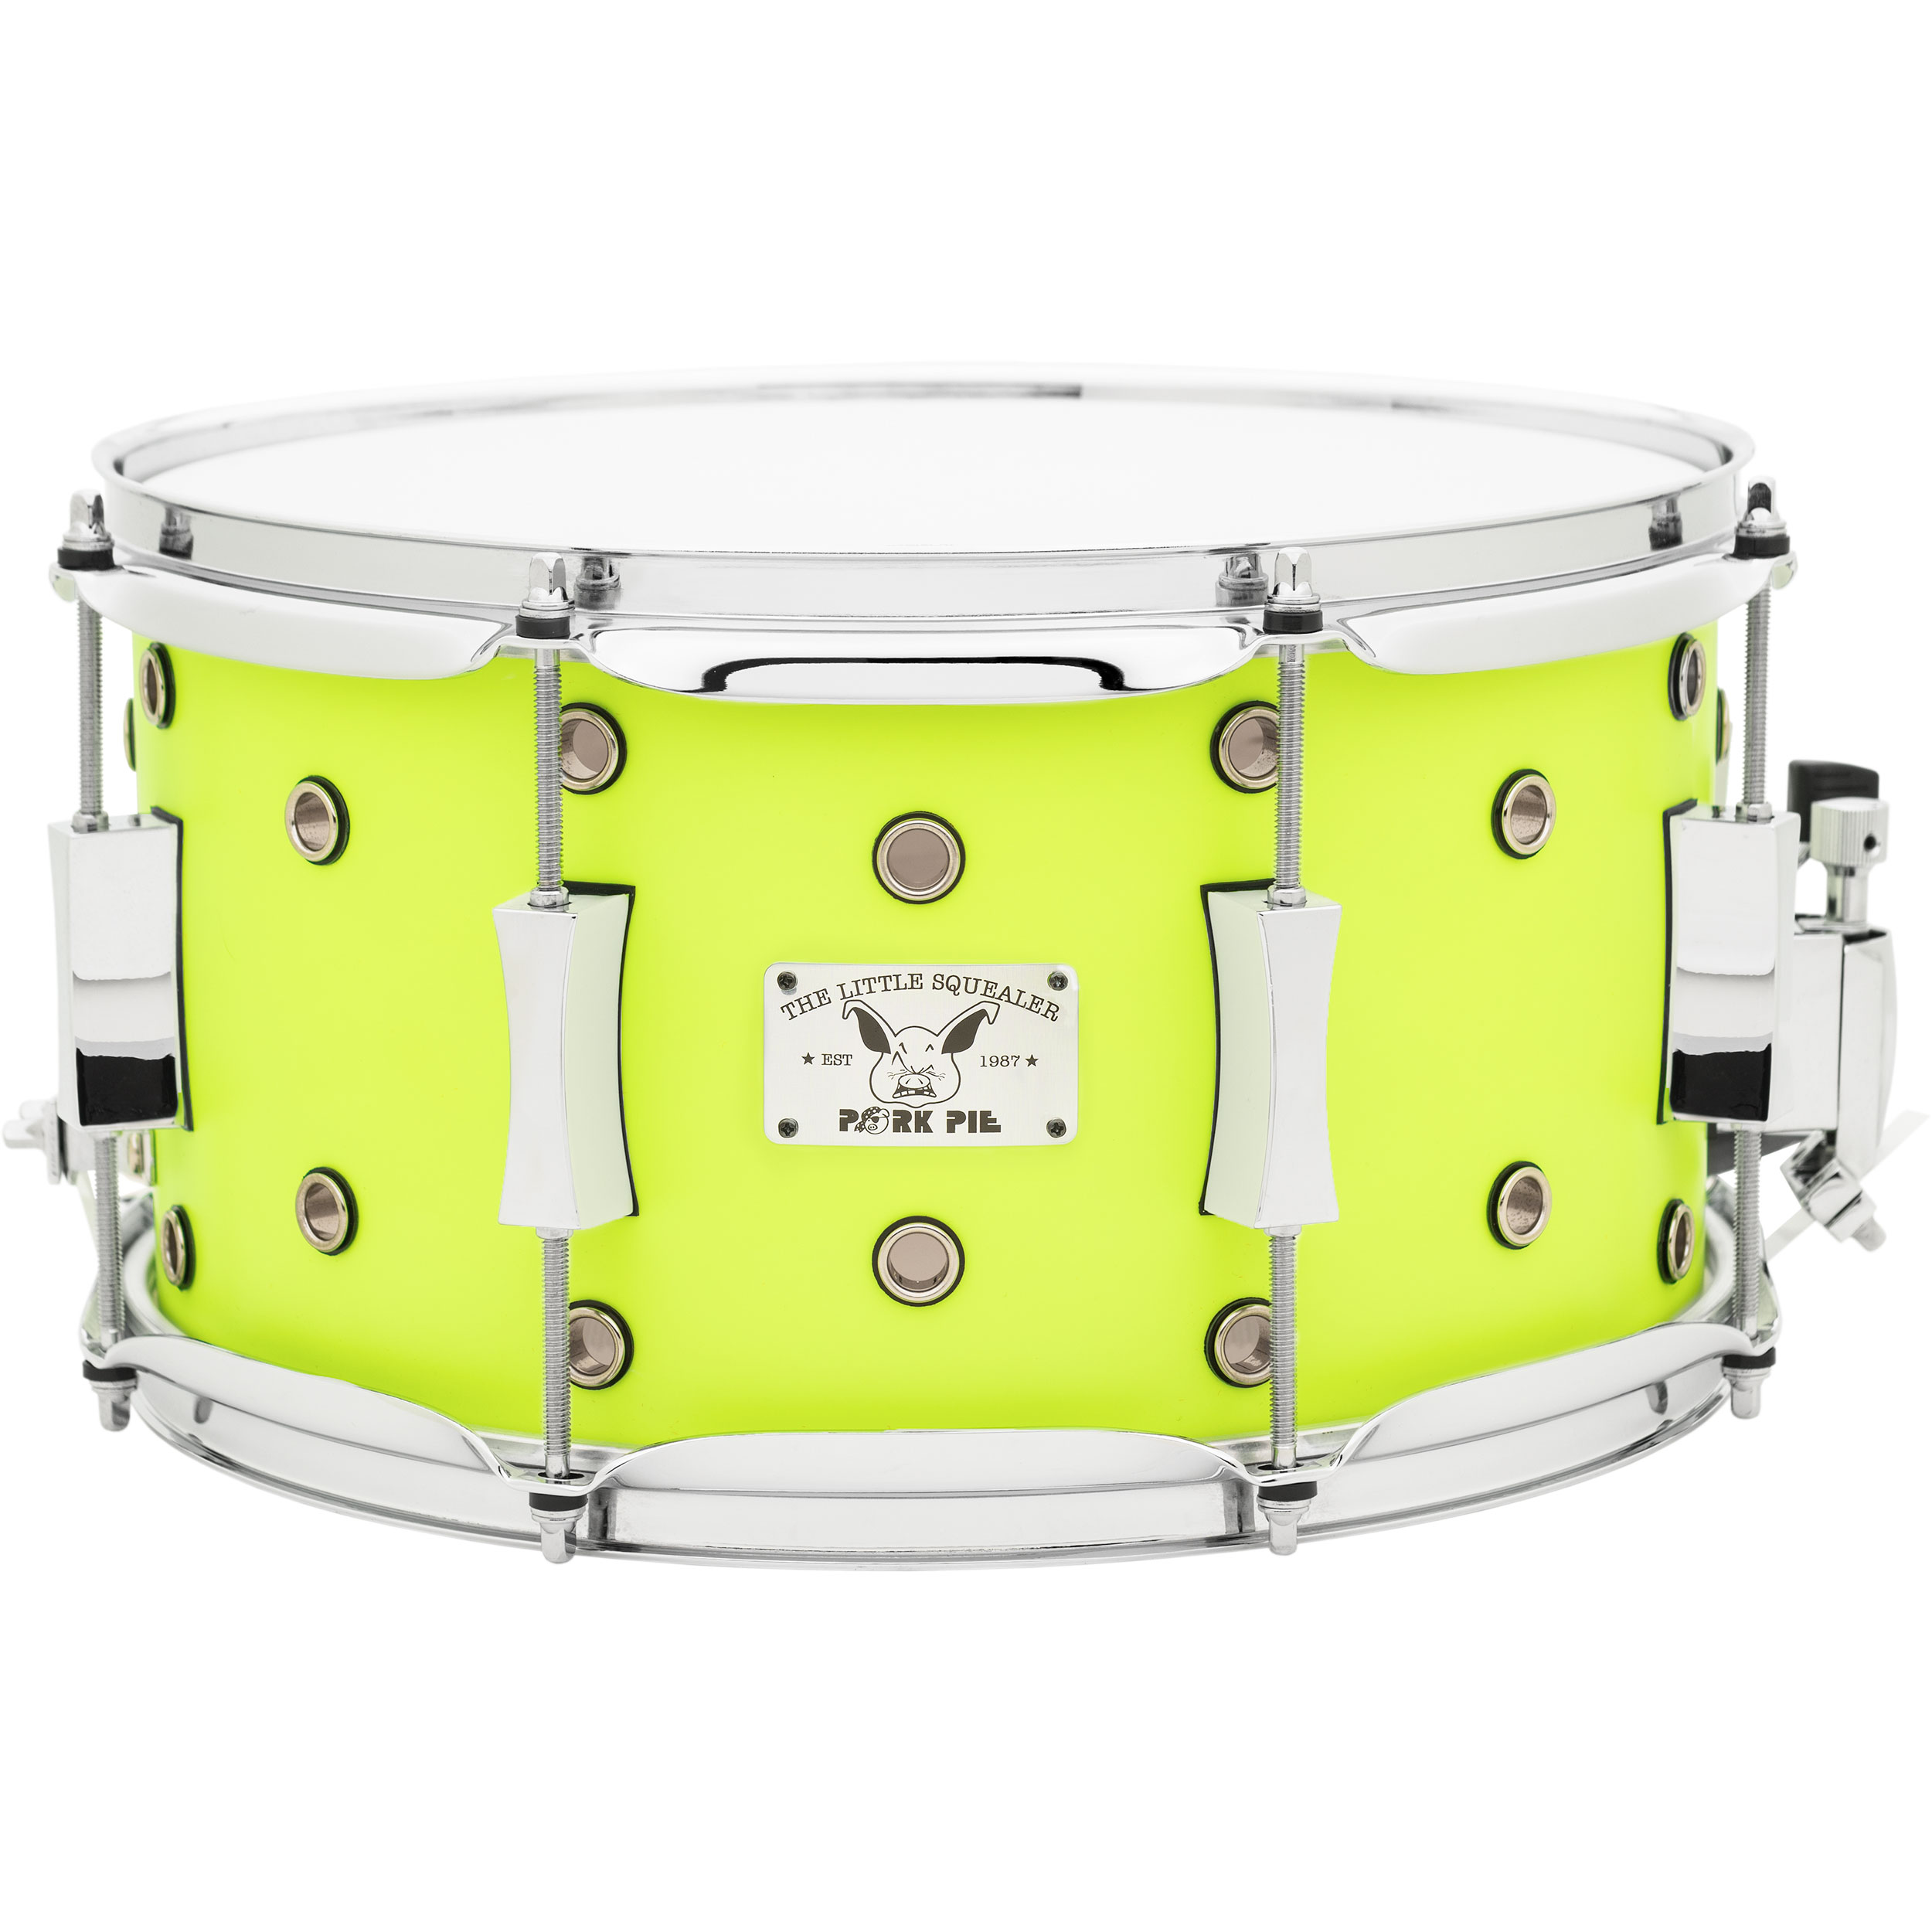 "Pork Pie Percussion 7"" x 13"" Vented Little Squealer Maple Snare Drum in Flat Neon Yellow"